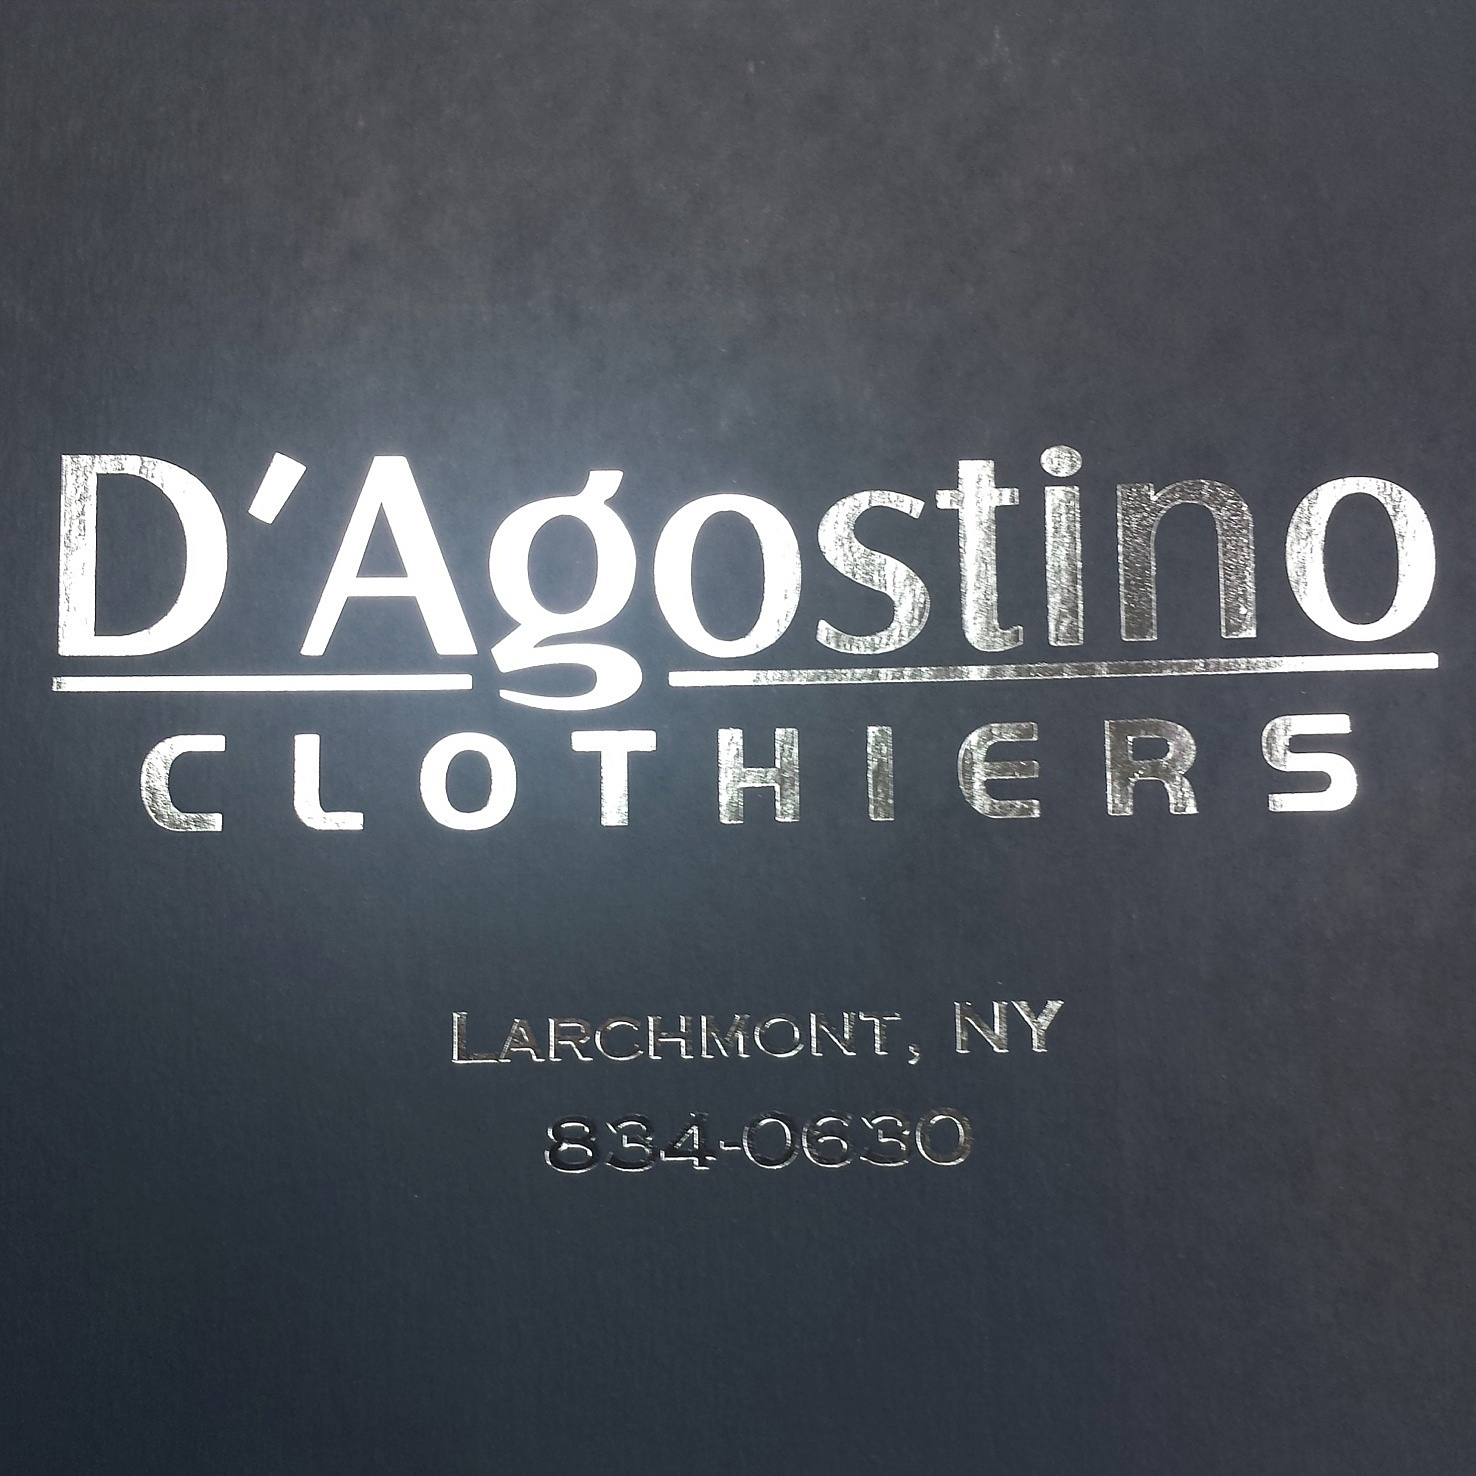 D'Agostino Clothiers & Tailors